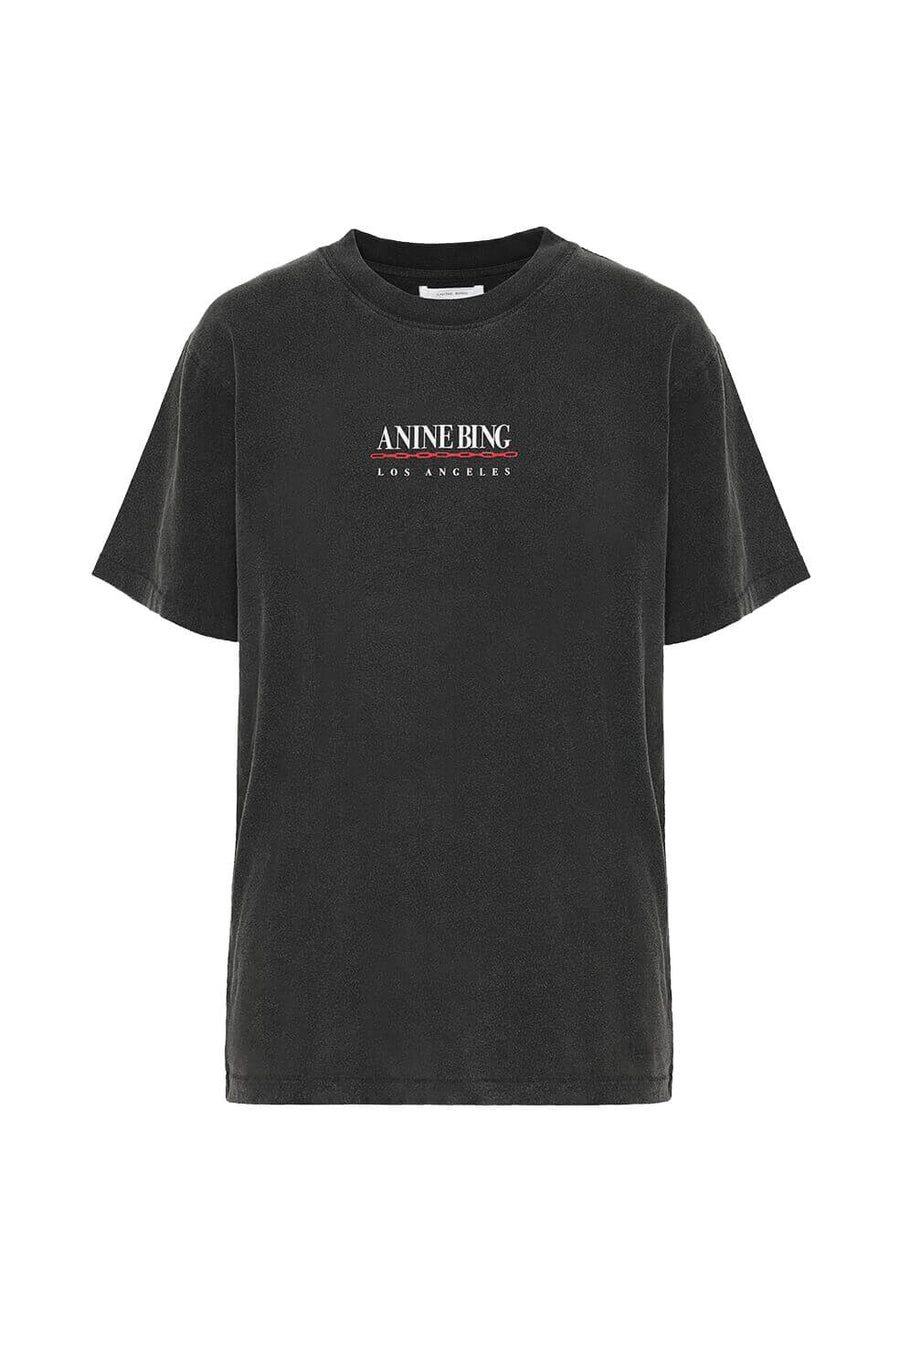 Anine Bing Lili Tee Link Short Sleeve T-Shirt in Black from The New Trend